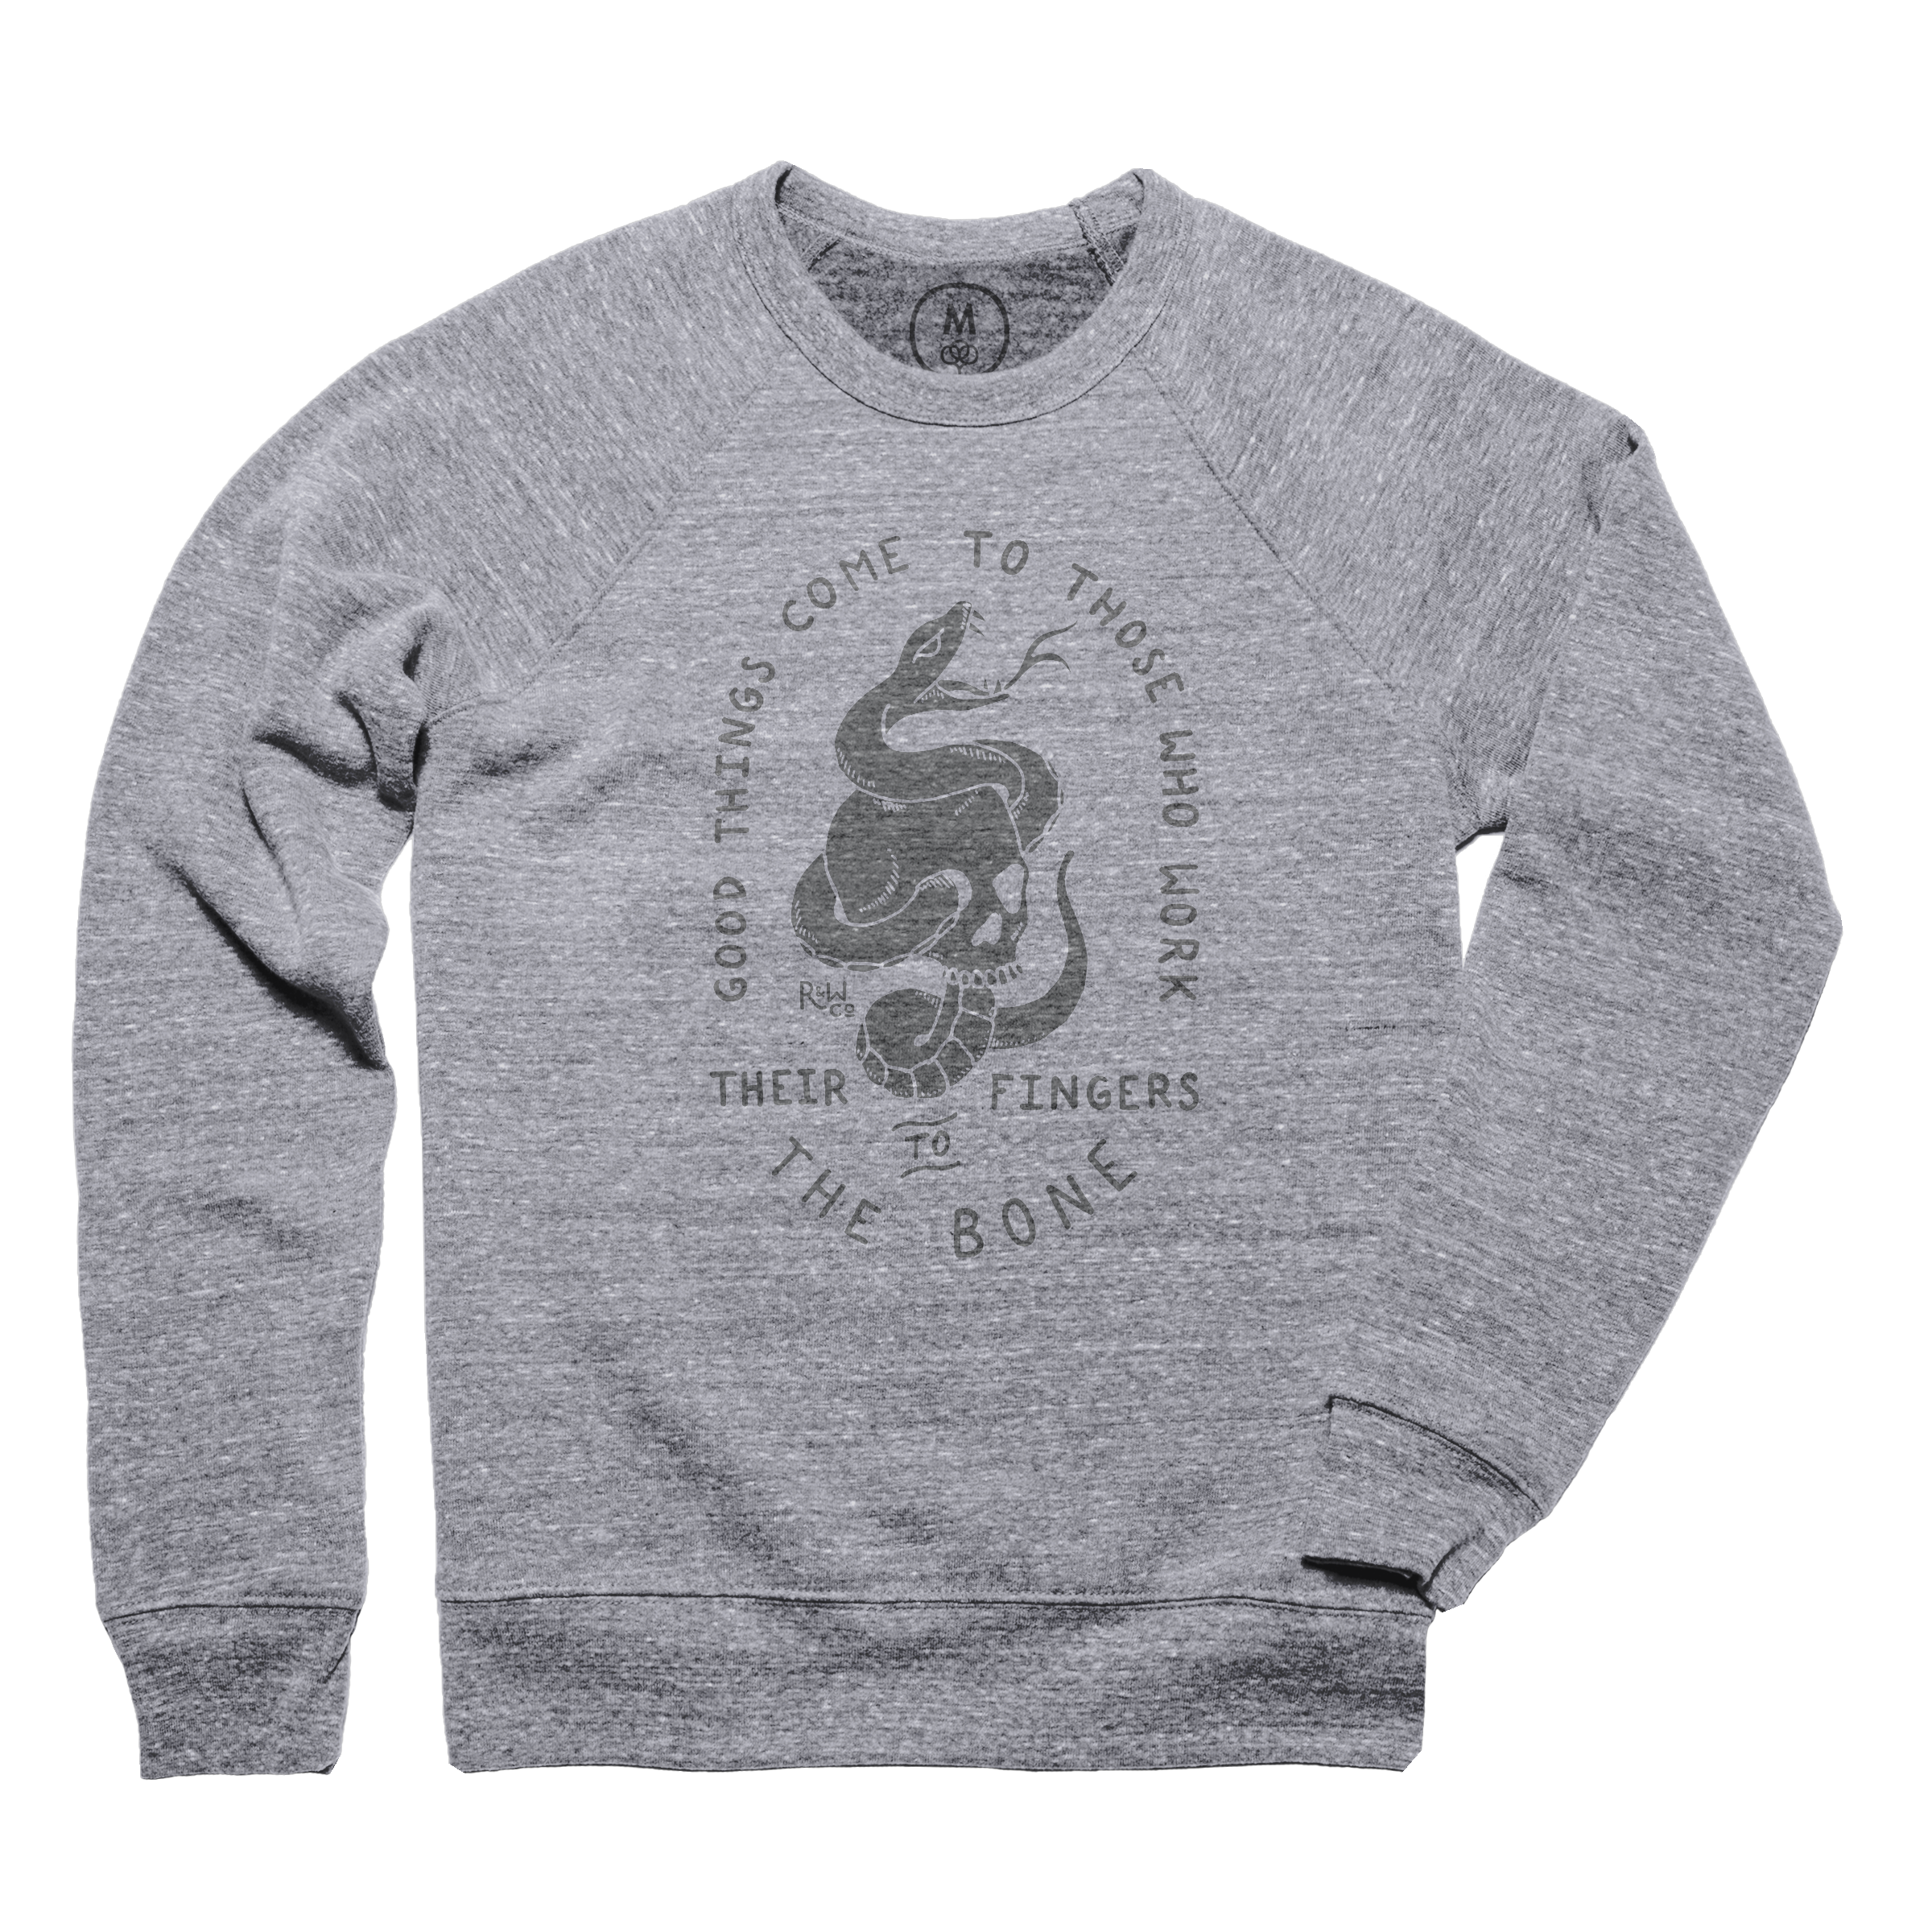 To The Bone Pullover Crewneck